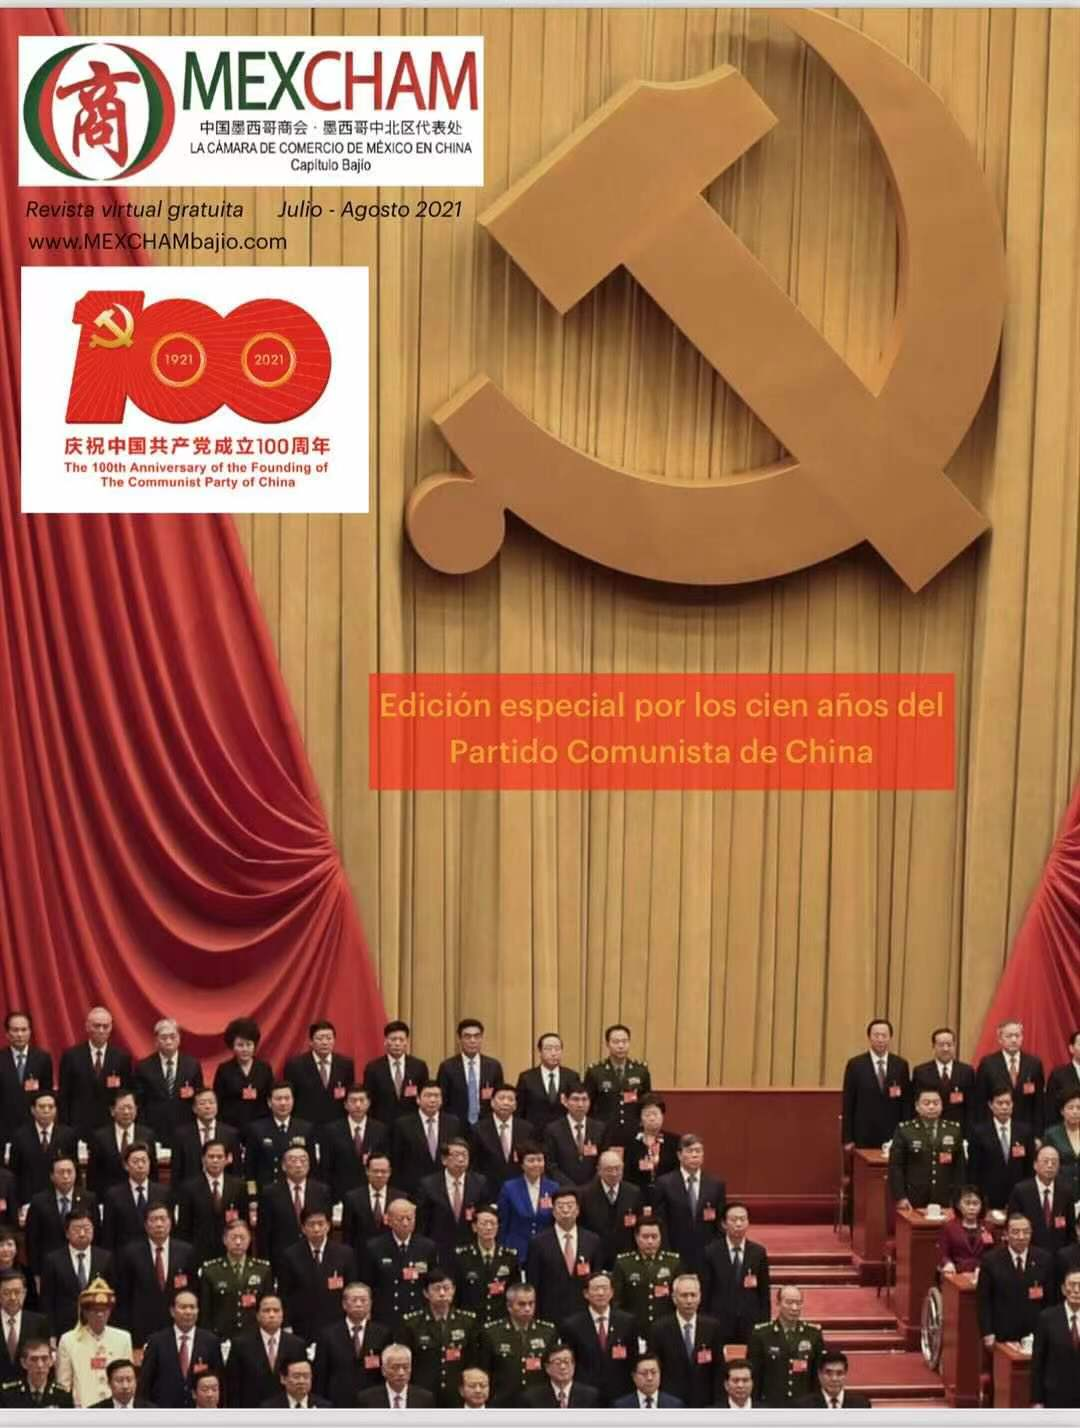 MEXCHAM´s special Newsletter 100th Anniversary of the Chinese Communist Party